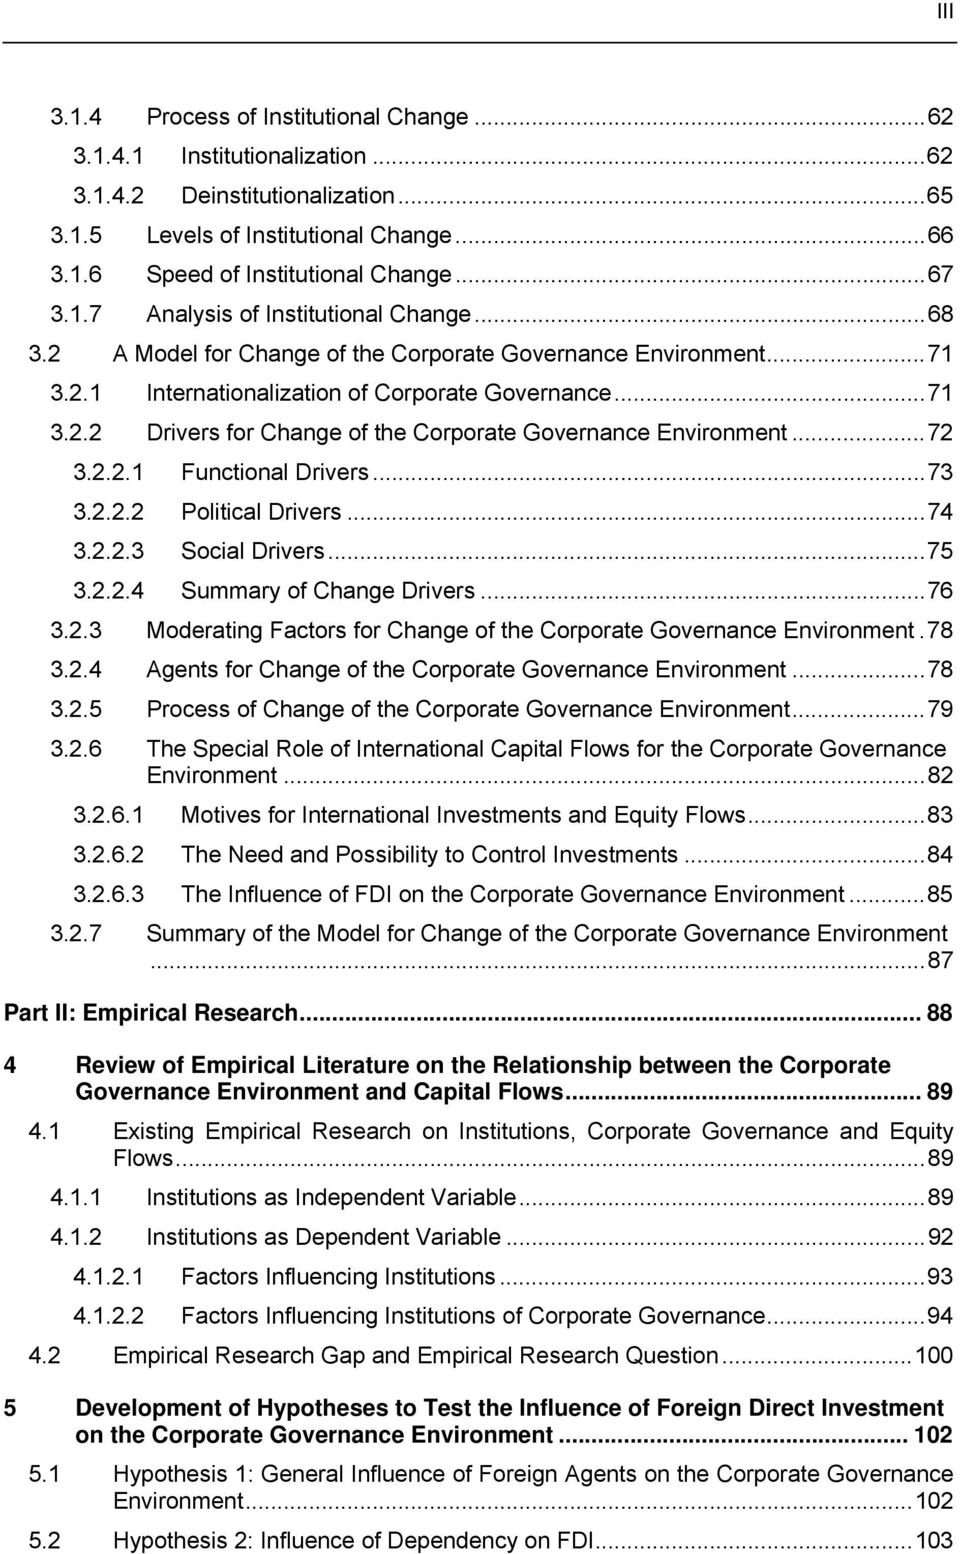 ..72 3.2.2.1 Functional Drivers...73 3.2.2.2 Political Drivers...74 3.2.2.3 Social Drivers...75 3.2.2.4 Summary of Change Drivers...76 3.2.3 Moderating Factors for Change of the Corporate Governance Environment.